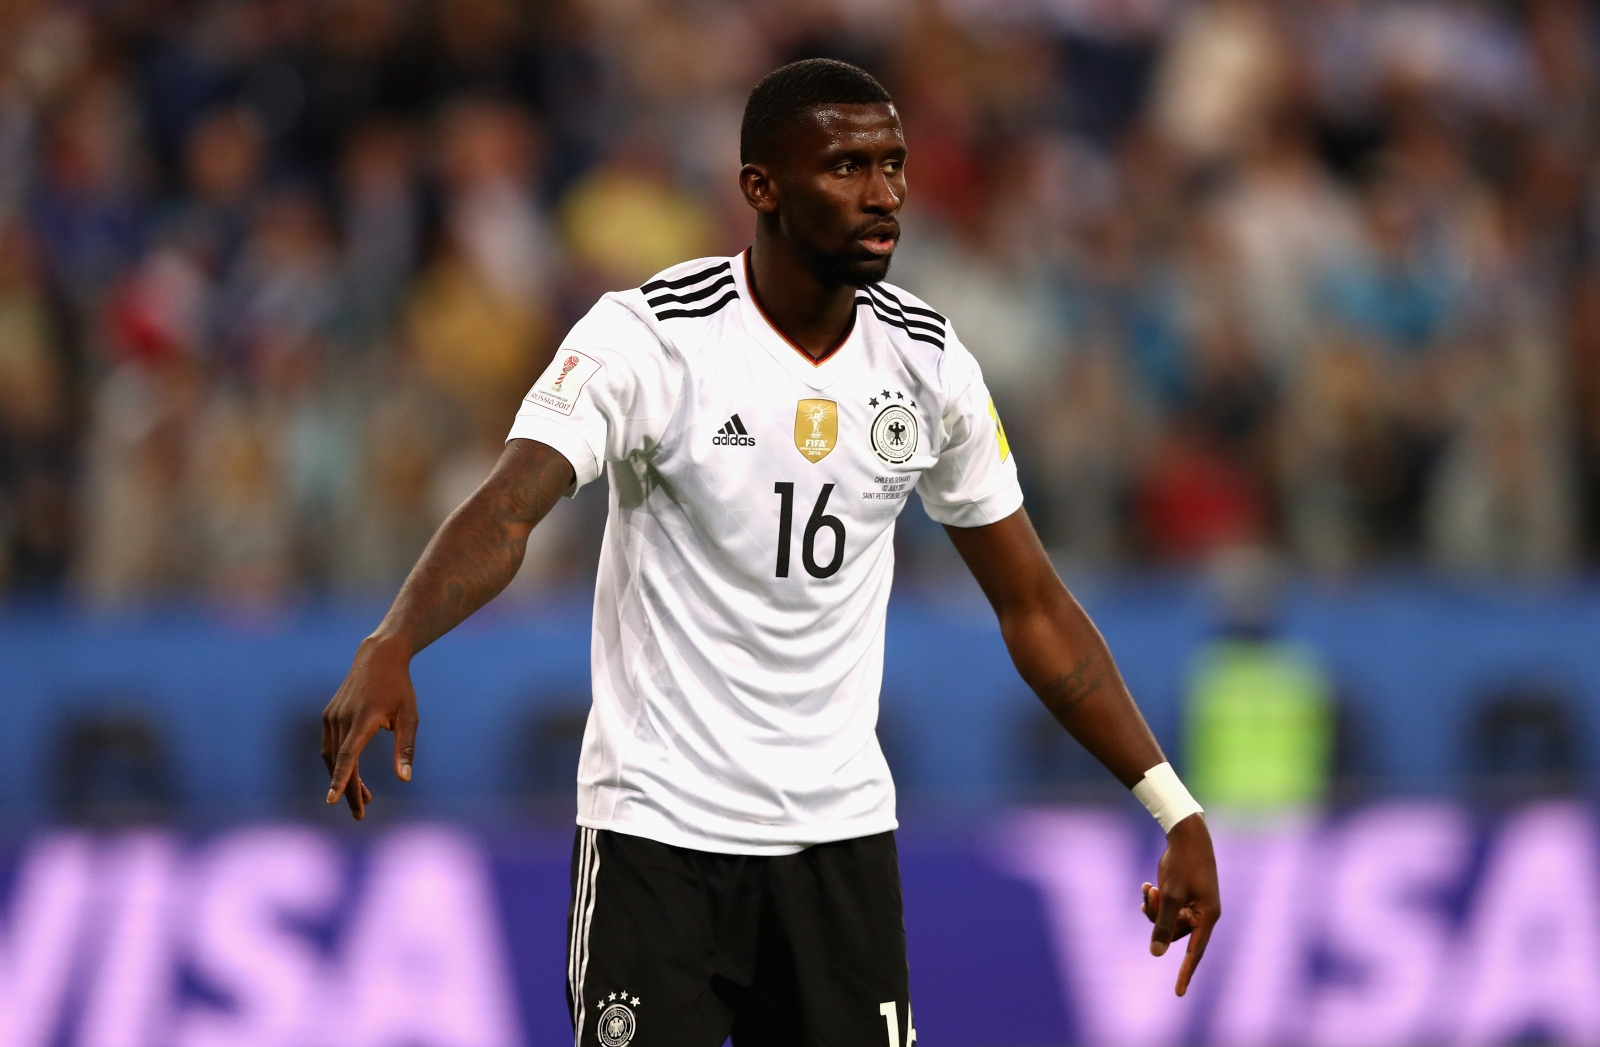 Chelsea confirm signing of defender Antonio Rudiger from Roma